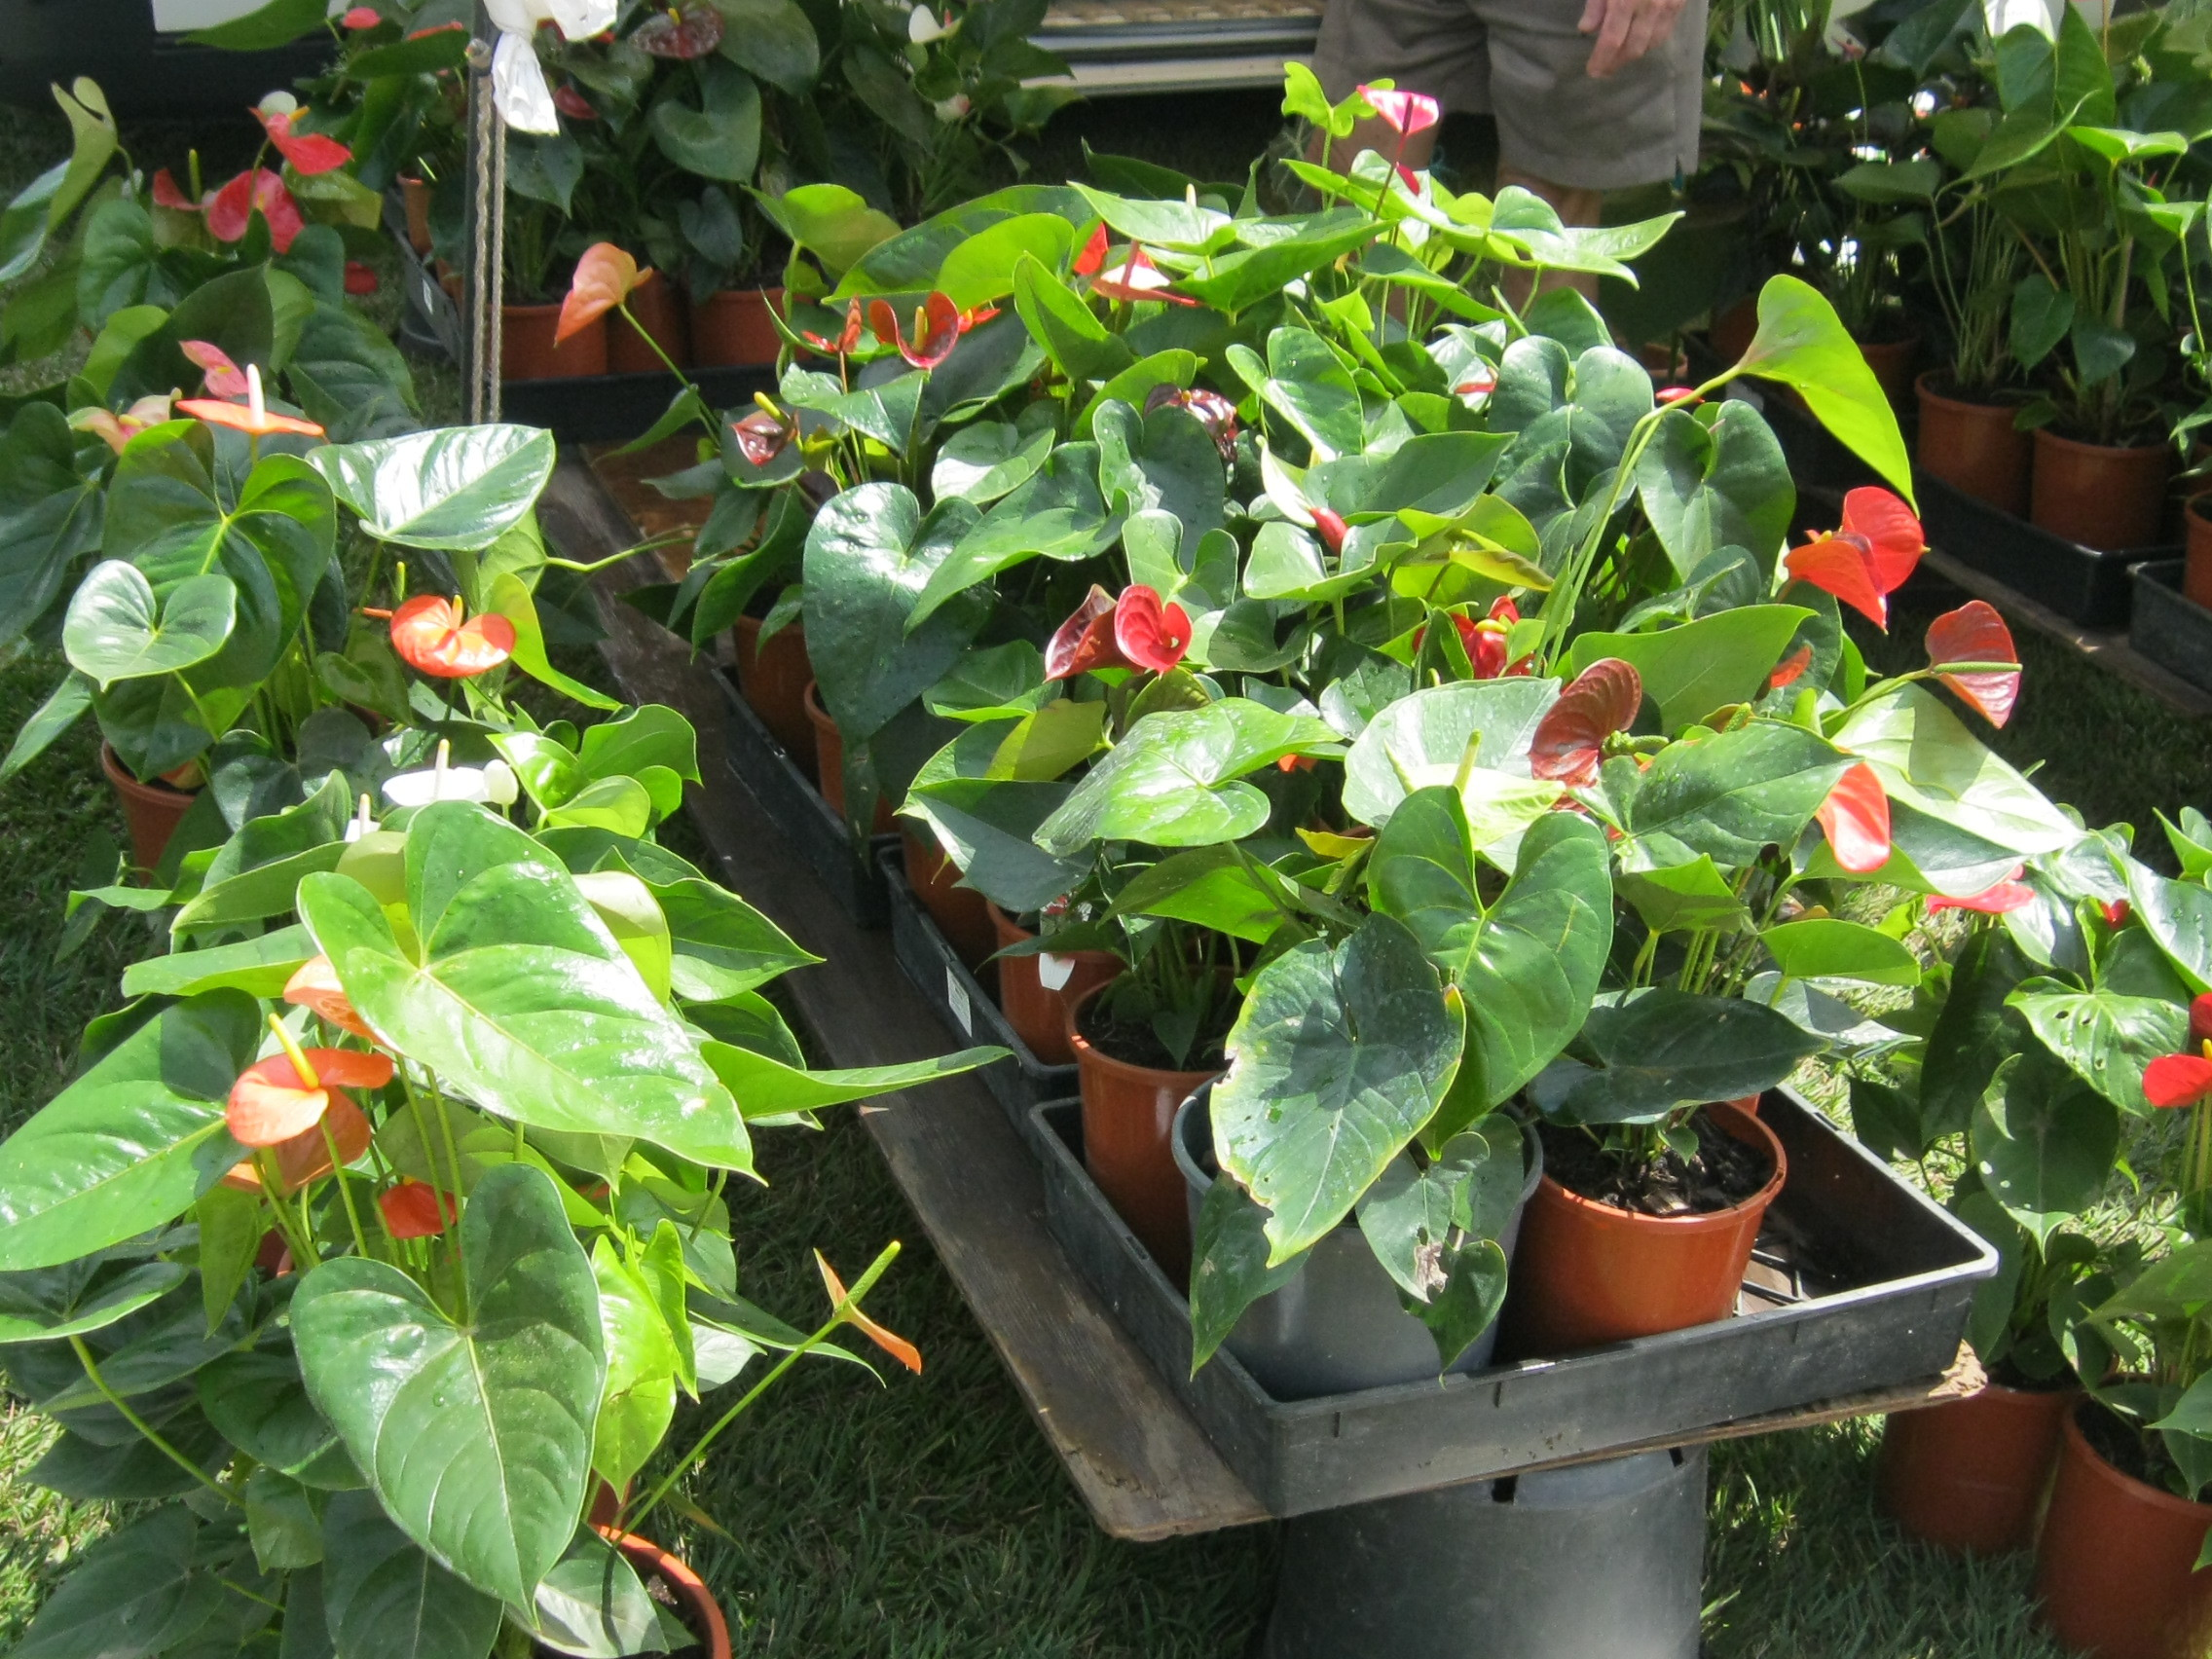 Where to buy plants and pots on the sunshine coast for In a garden 26 trees are planted